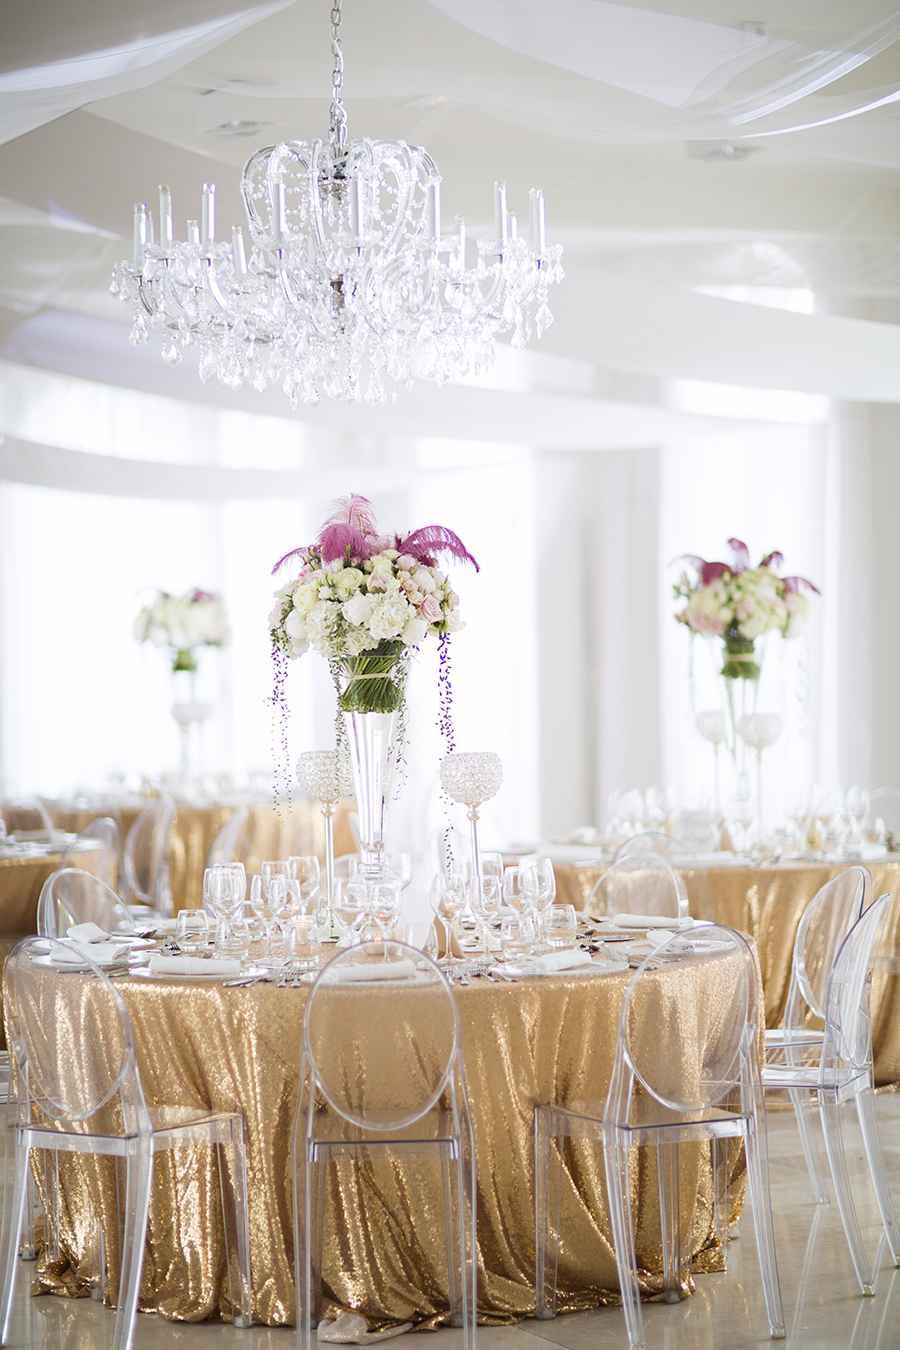 Golden wedding decoration: 60 ideas with photos to inspire 2